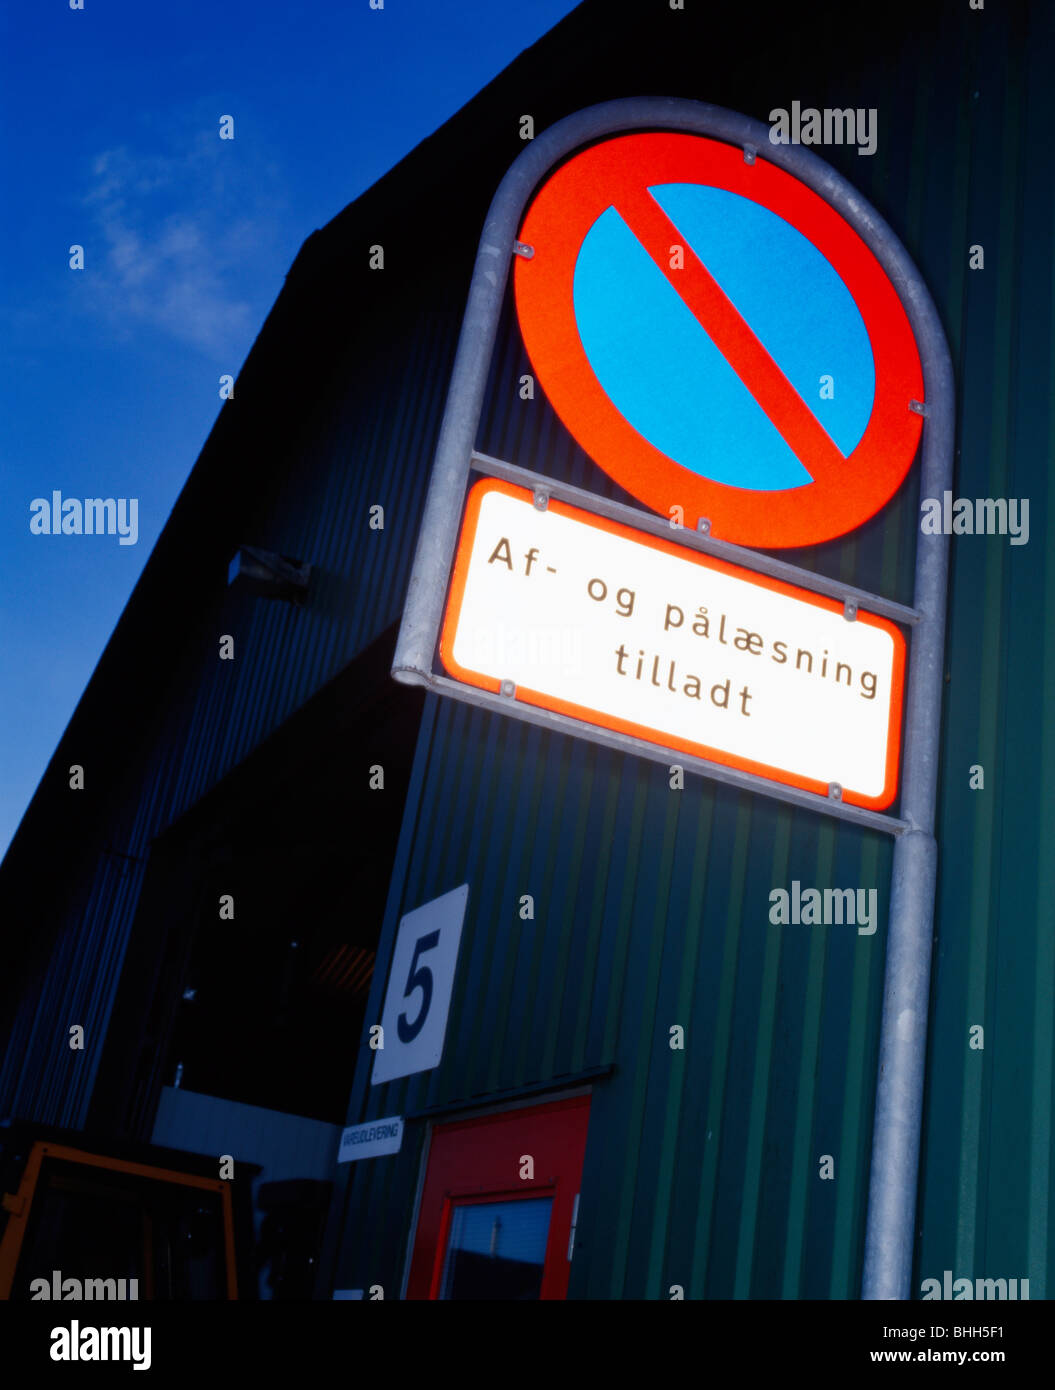 A sign in the evening, Denmark. Stock Photo